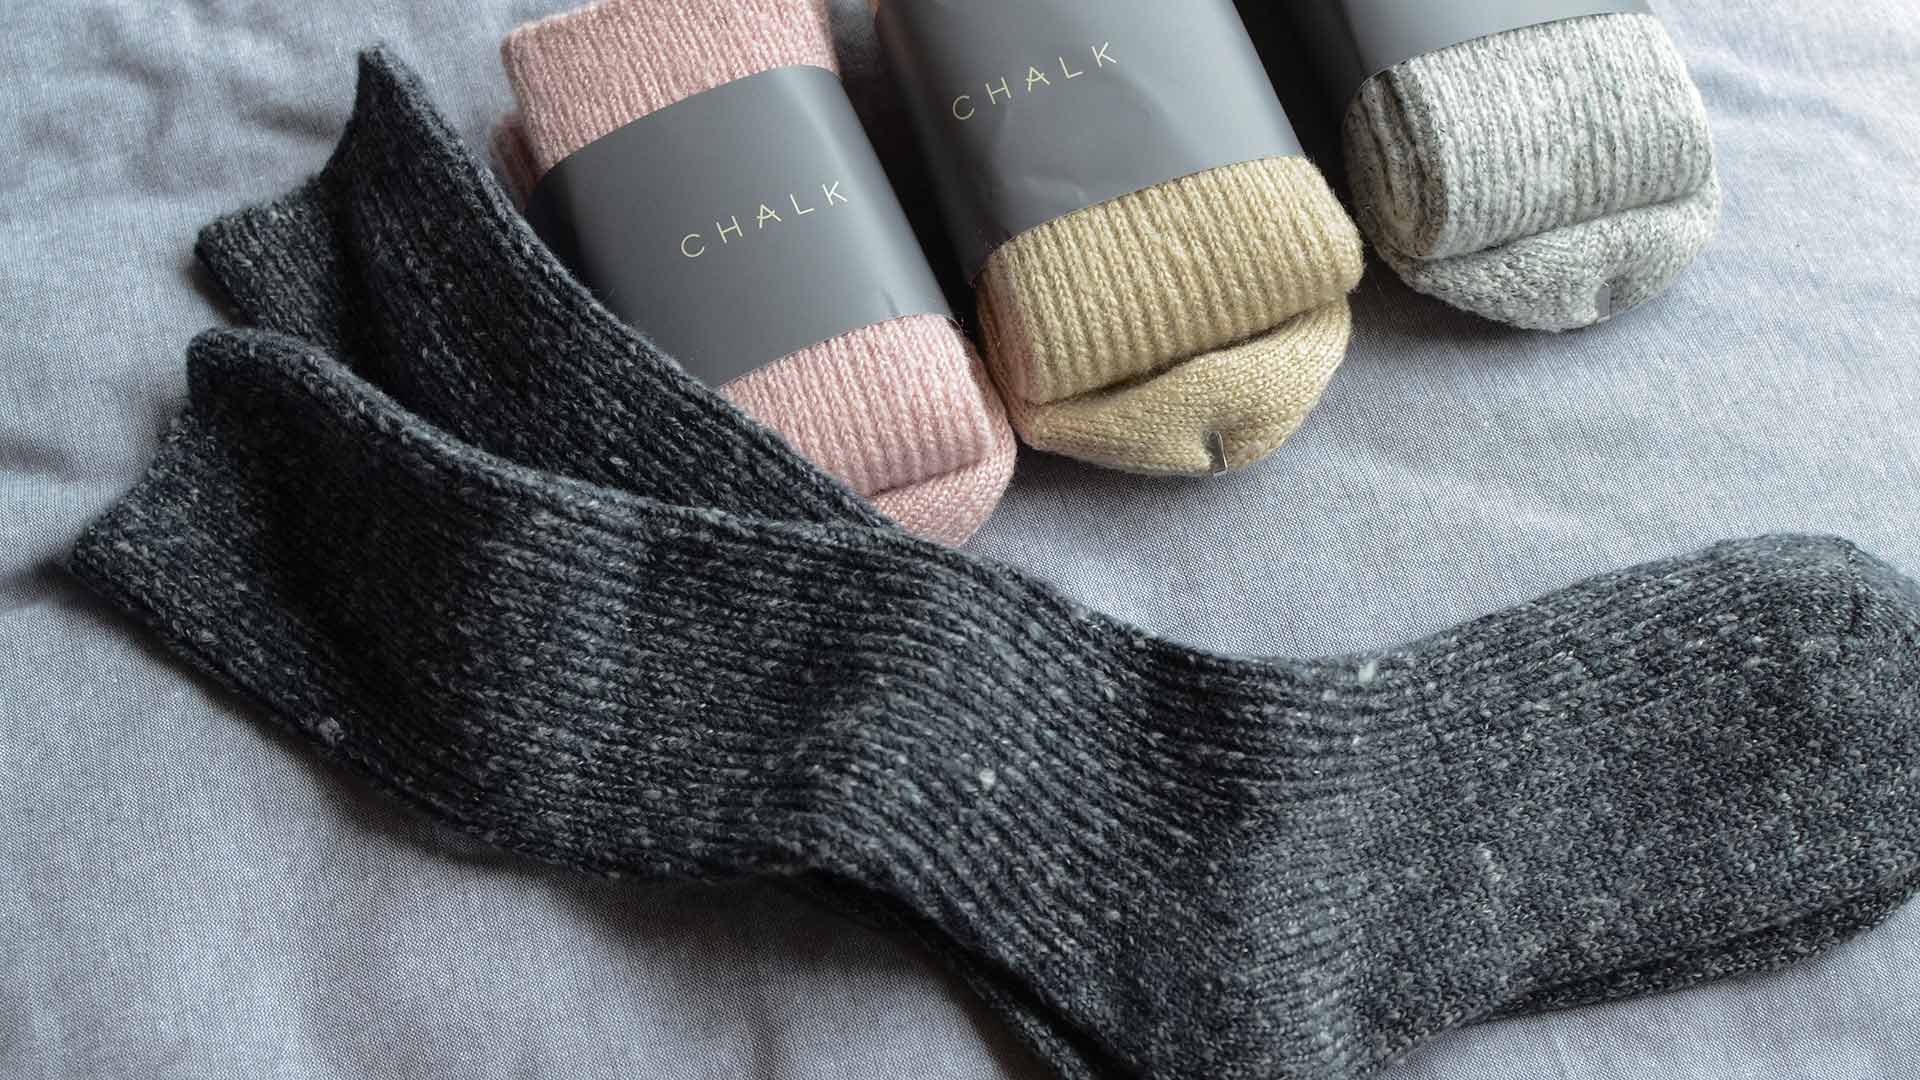 Soft And Cosy Socks Chalk Loungewear Natural Bed Company